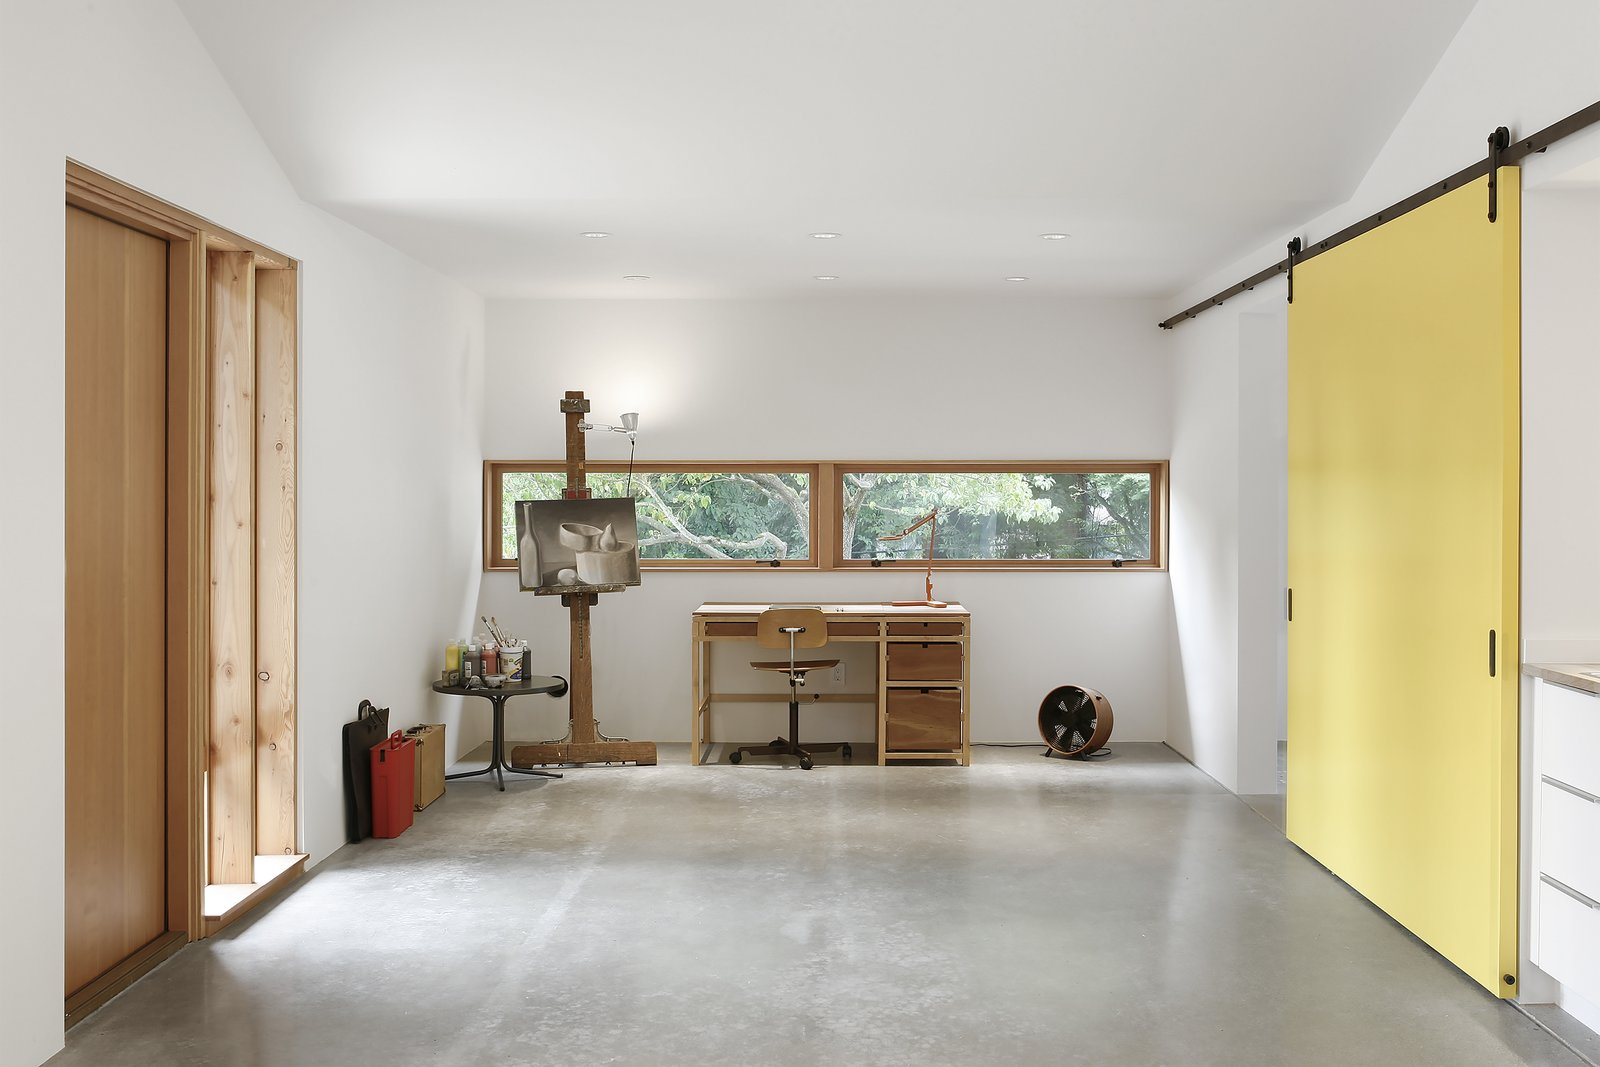 """""""Concrete floors, drywall, and minimal use of trim allowed for the feel of the space to remain utilitarian, while exposed Douglas fir structural members created a connection to regional Pacific Northwest design,"""" Schaer says. The clients wanted a place for painting and occasional freelance work, which fits opposite the room's fireplace and seating area. A Kevi Chair by Jørgen Rasmussen accompanies the desk."""